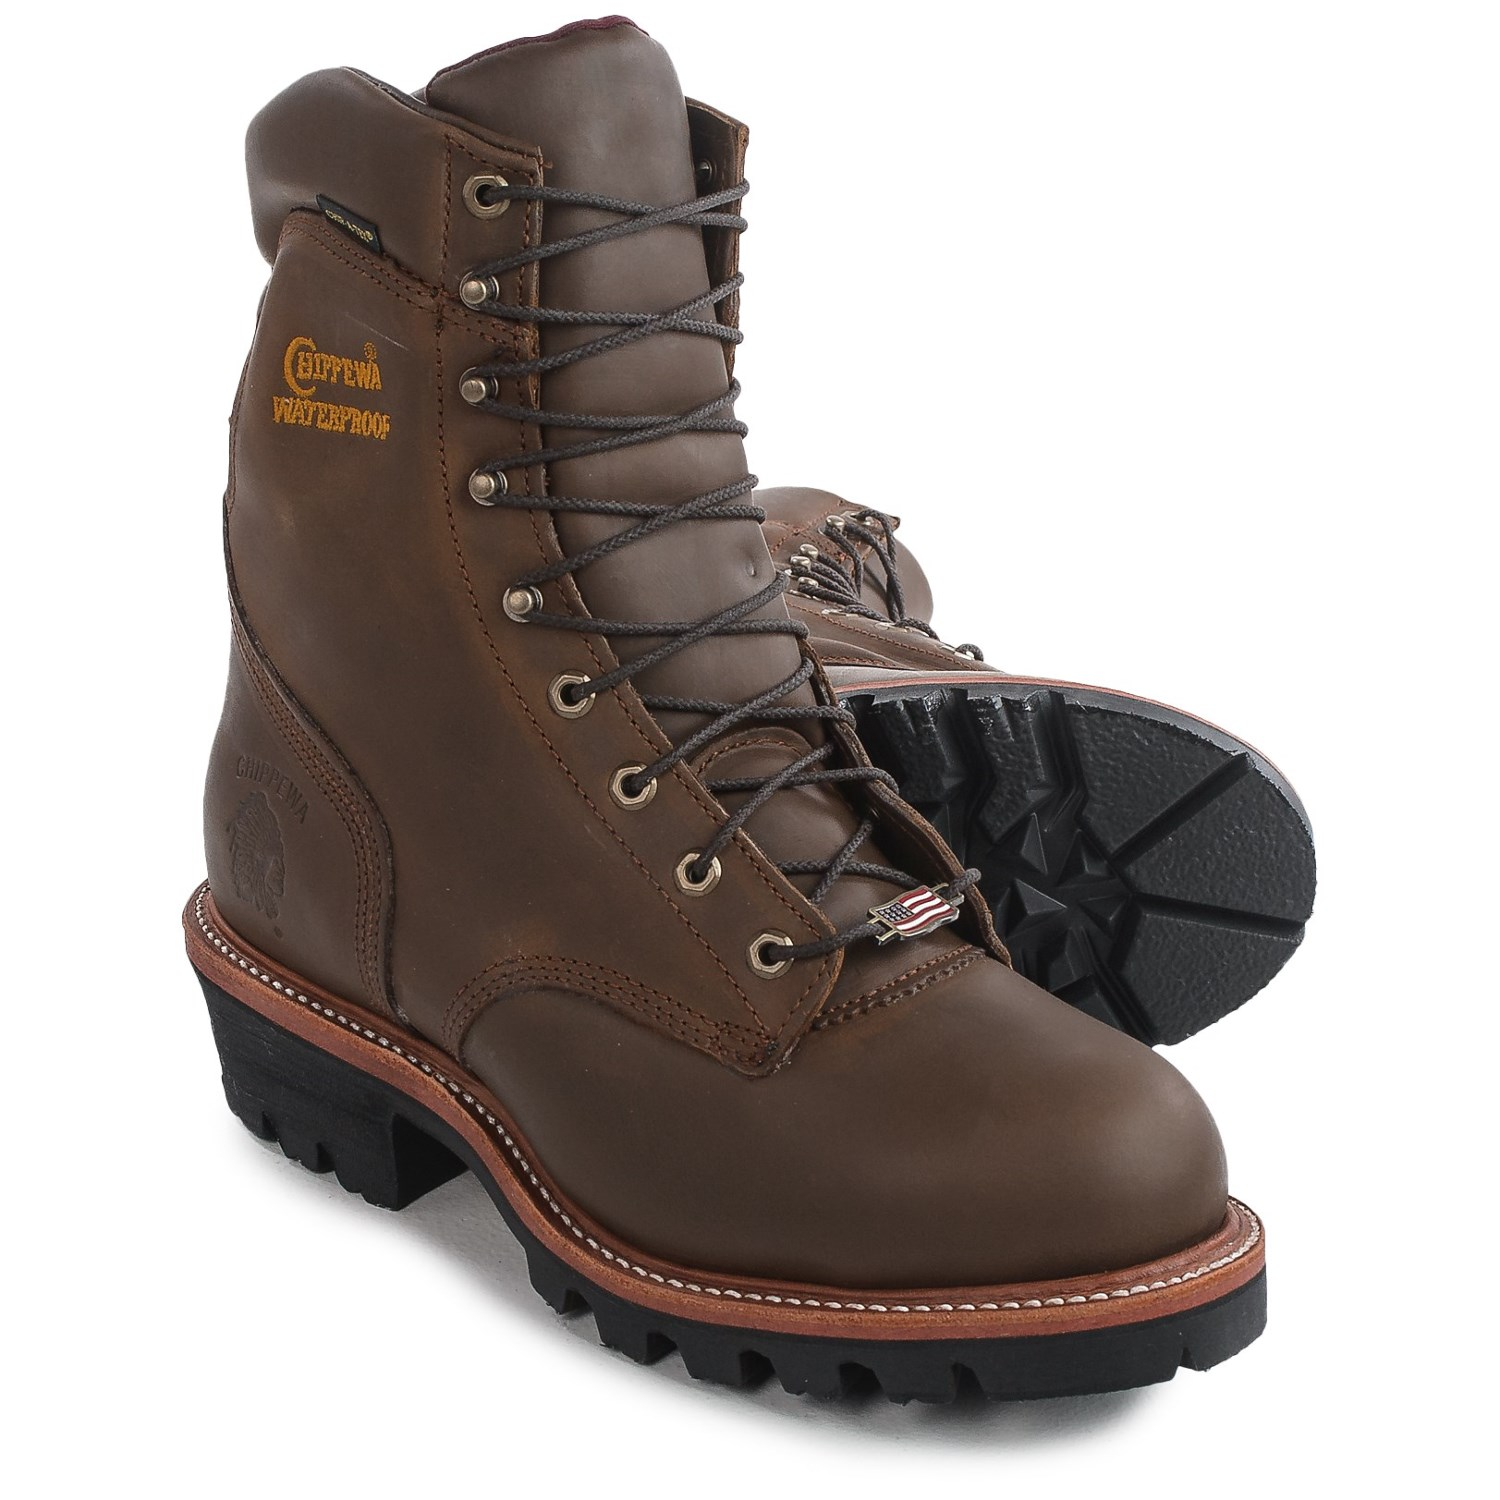 Men's Work Boots: Average savings of 44% at Sierra Trading Post